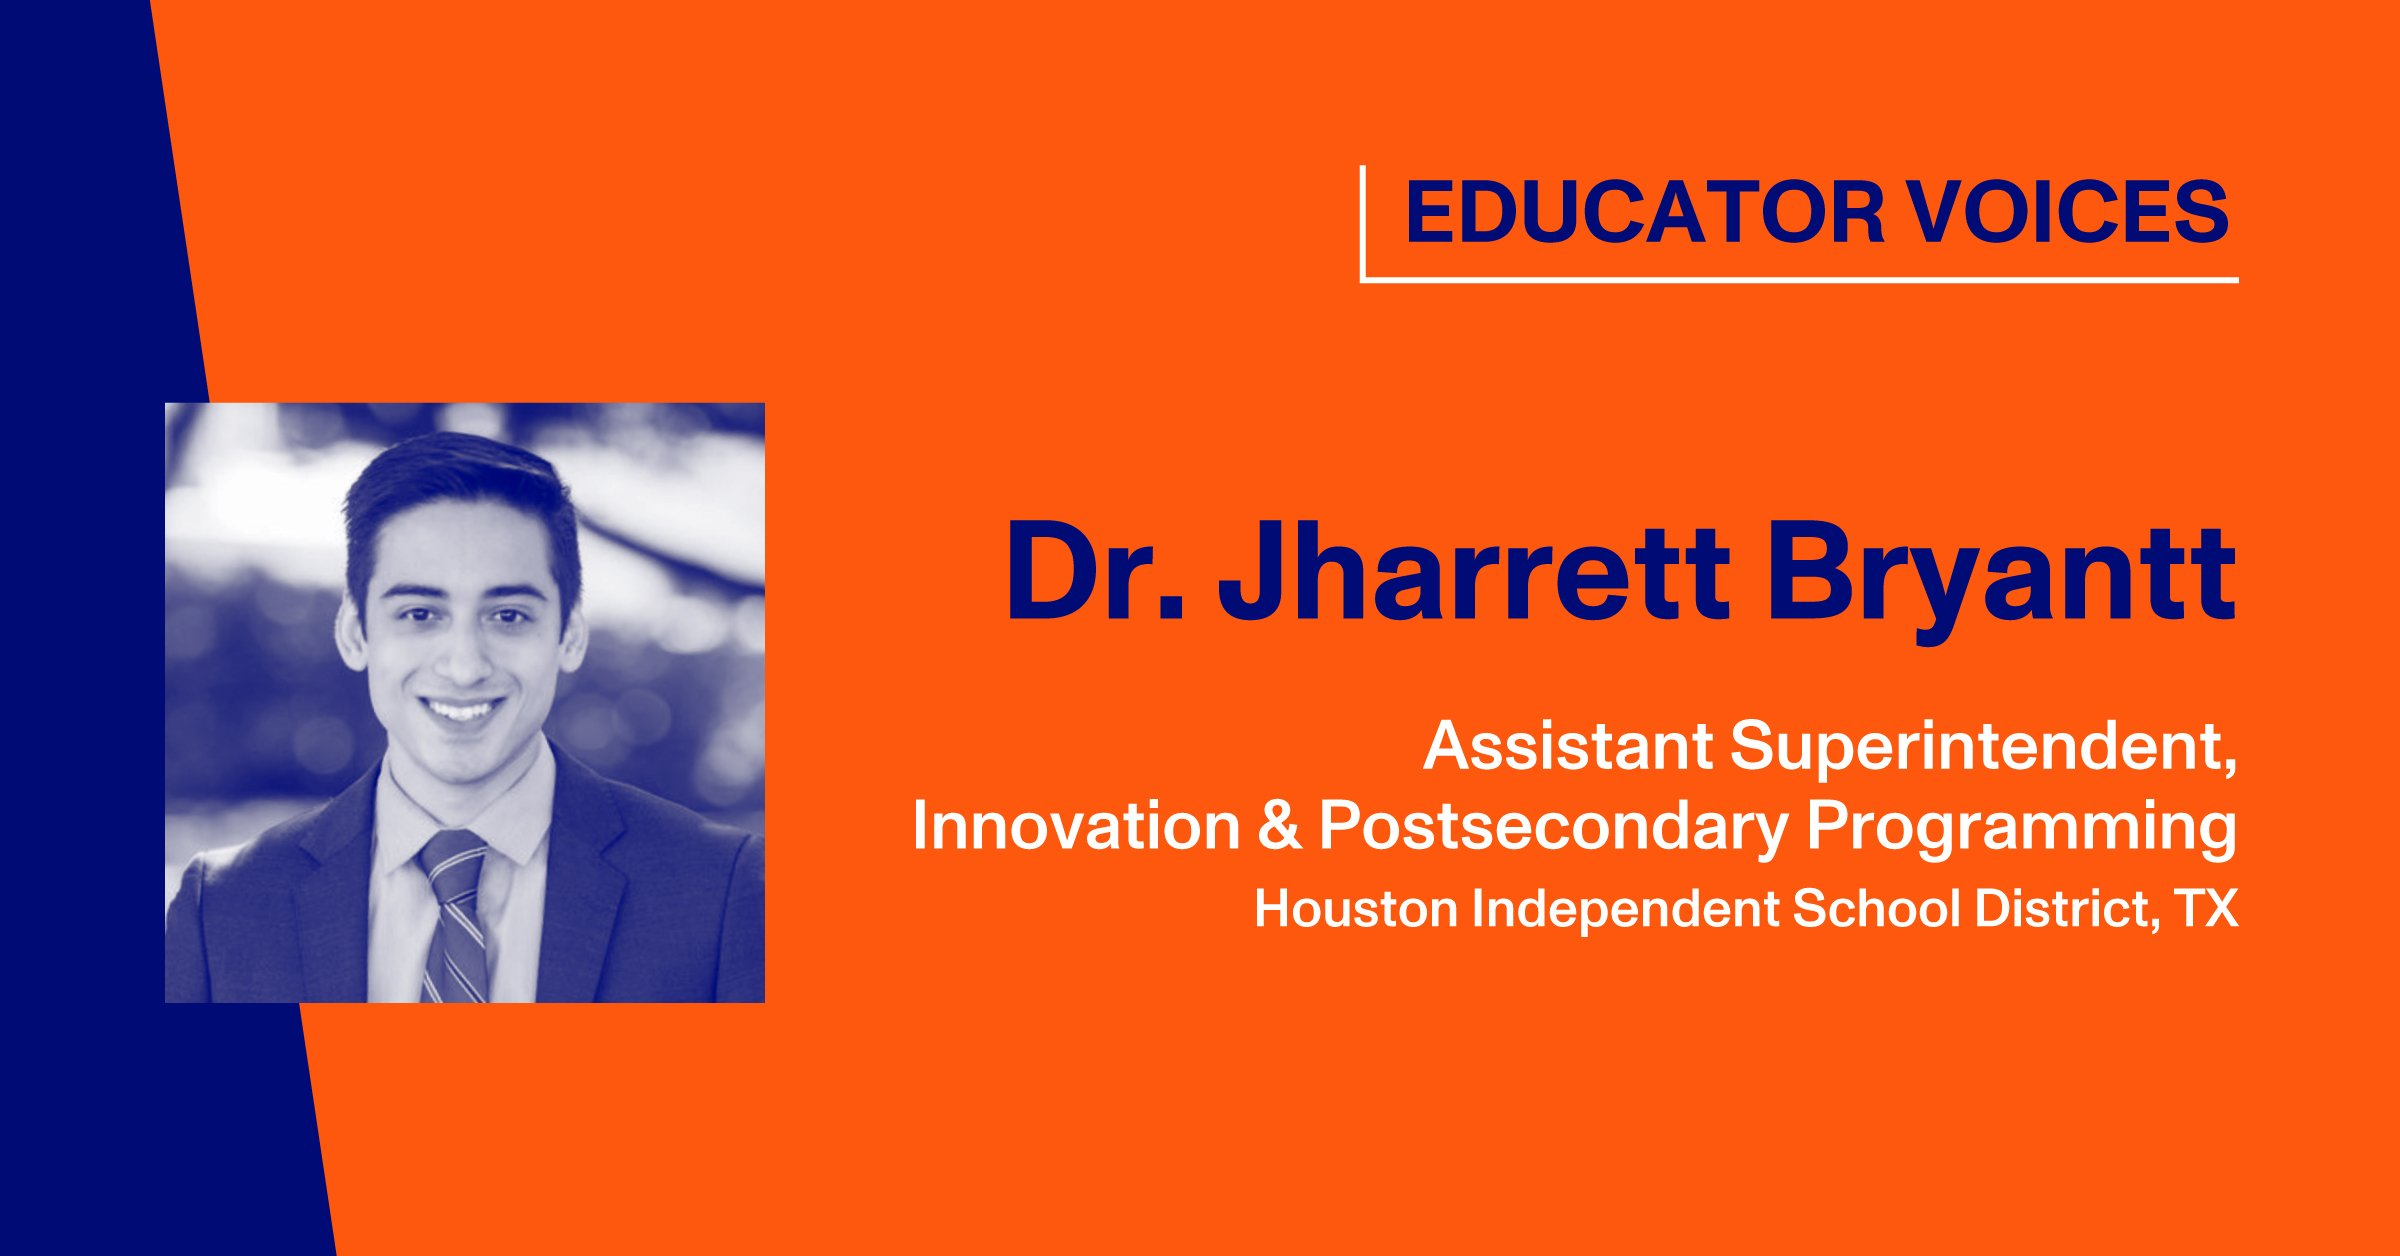 Blog Graphic with Headshot of Dr. Jharrett Bryantt, Assistant Superintendent